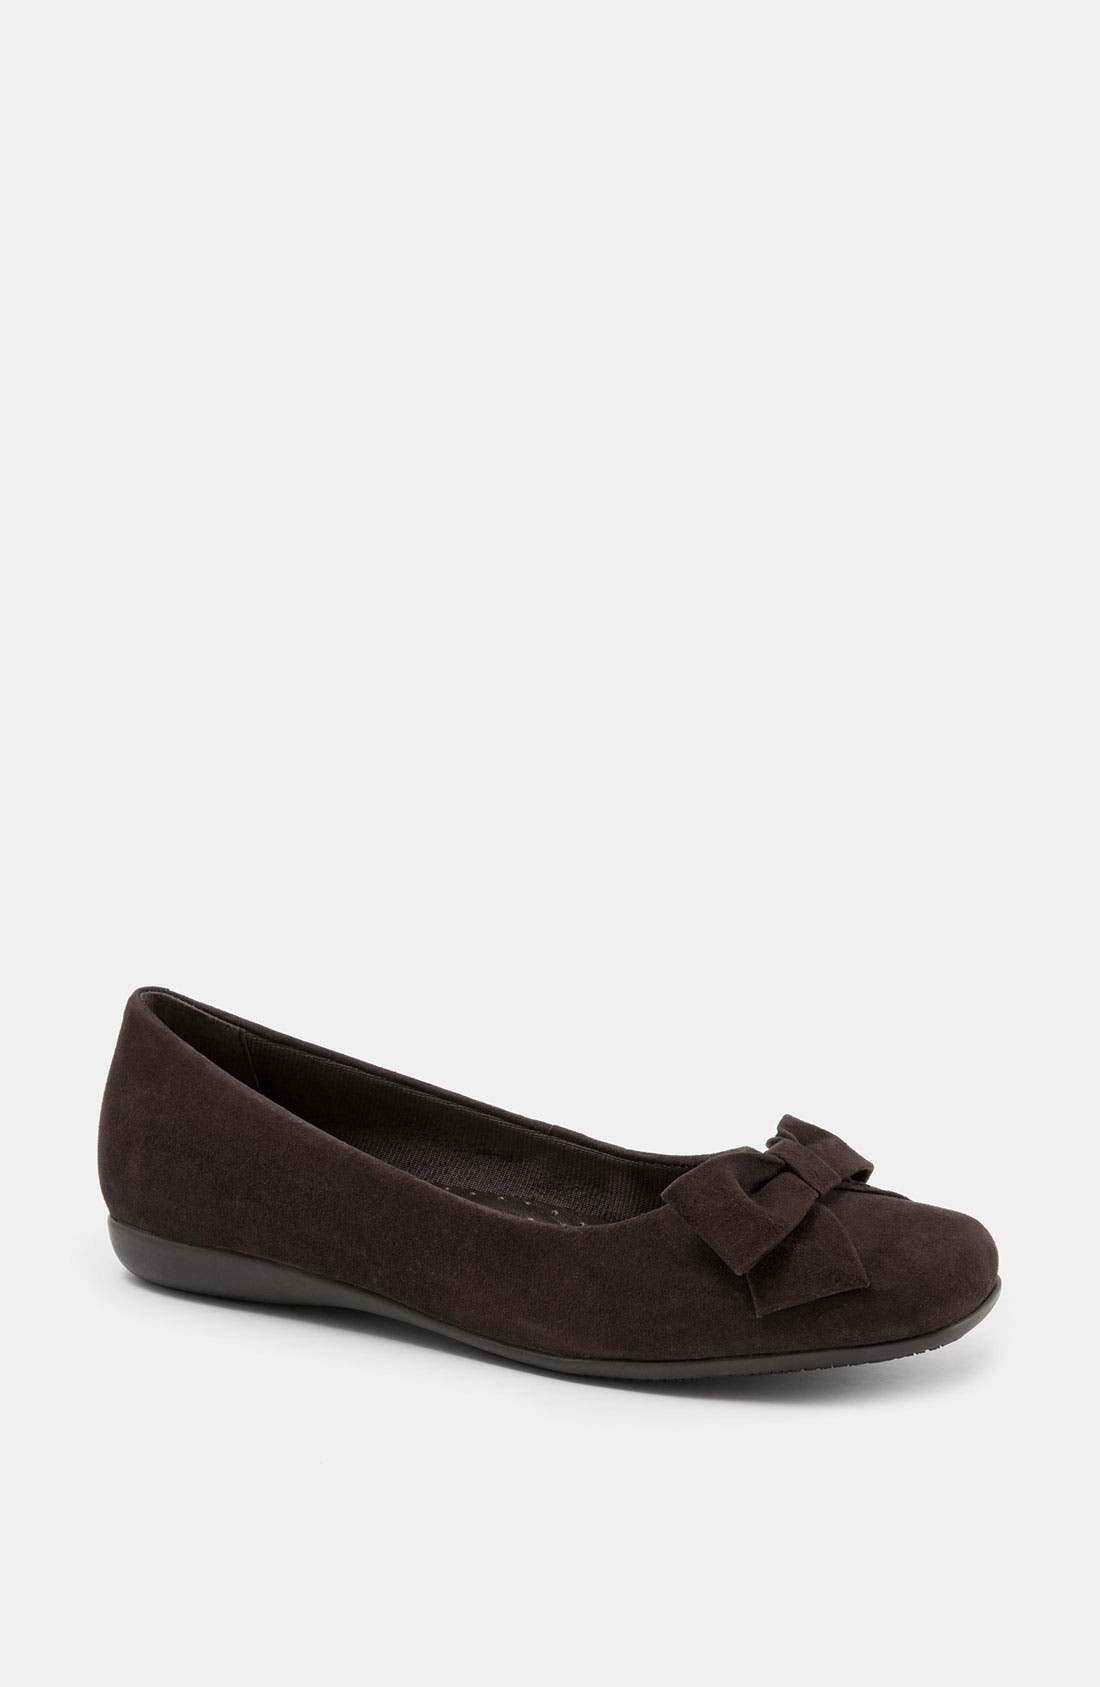 Alternate Image 1 Selected - Trotters 'Sonia' Flat